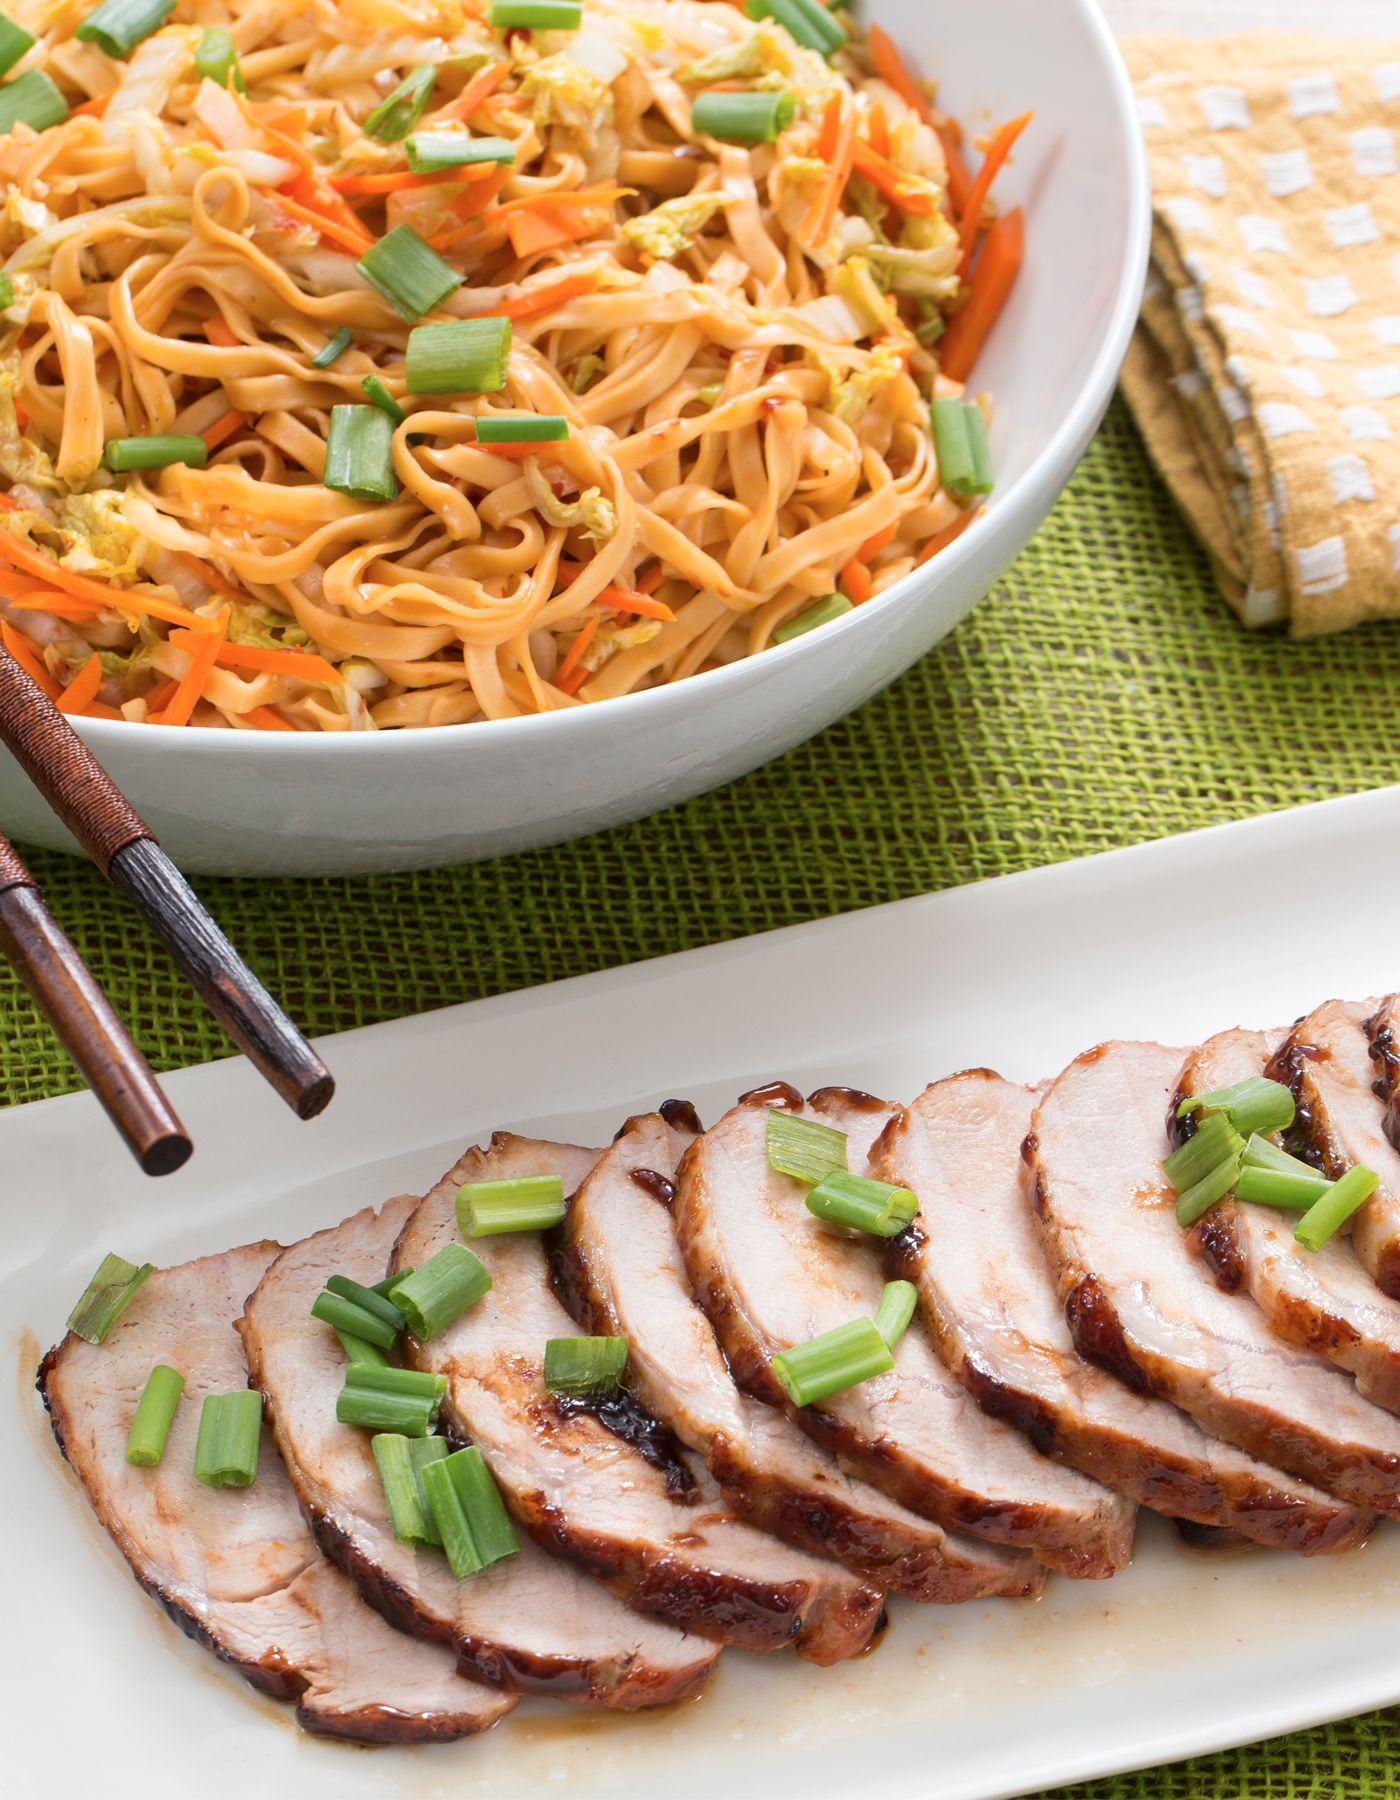 First, we're glazing hearty roast pork with hoisin sauce, a citrusy, sweet ingredient used throughout Chinese cooking. Second, on the side, we're dressing fresh wonton noodles with a lime-infused peanut sauce, spiced with a dash of sambal oelek—a Southeast Asian condiment made from red chile peppers.